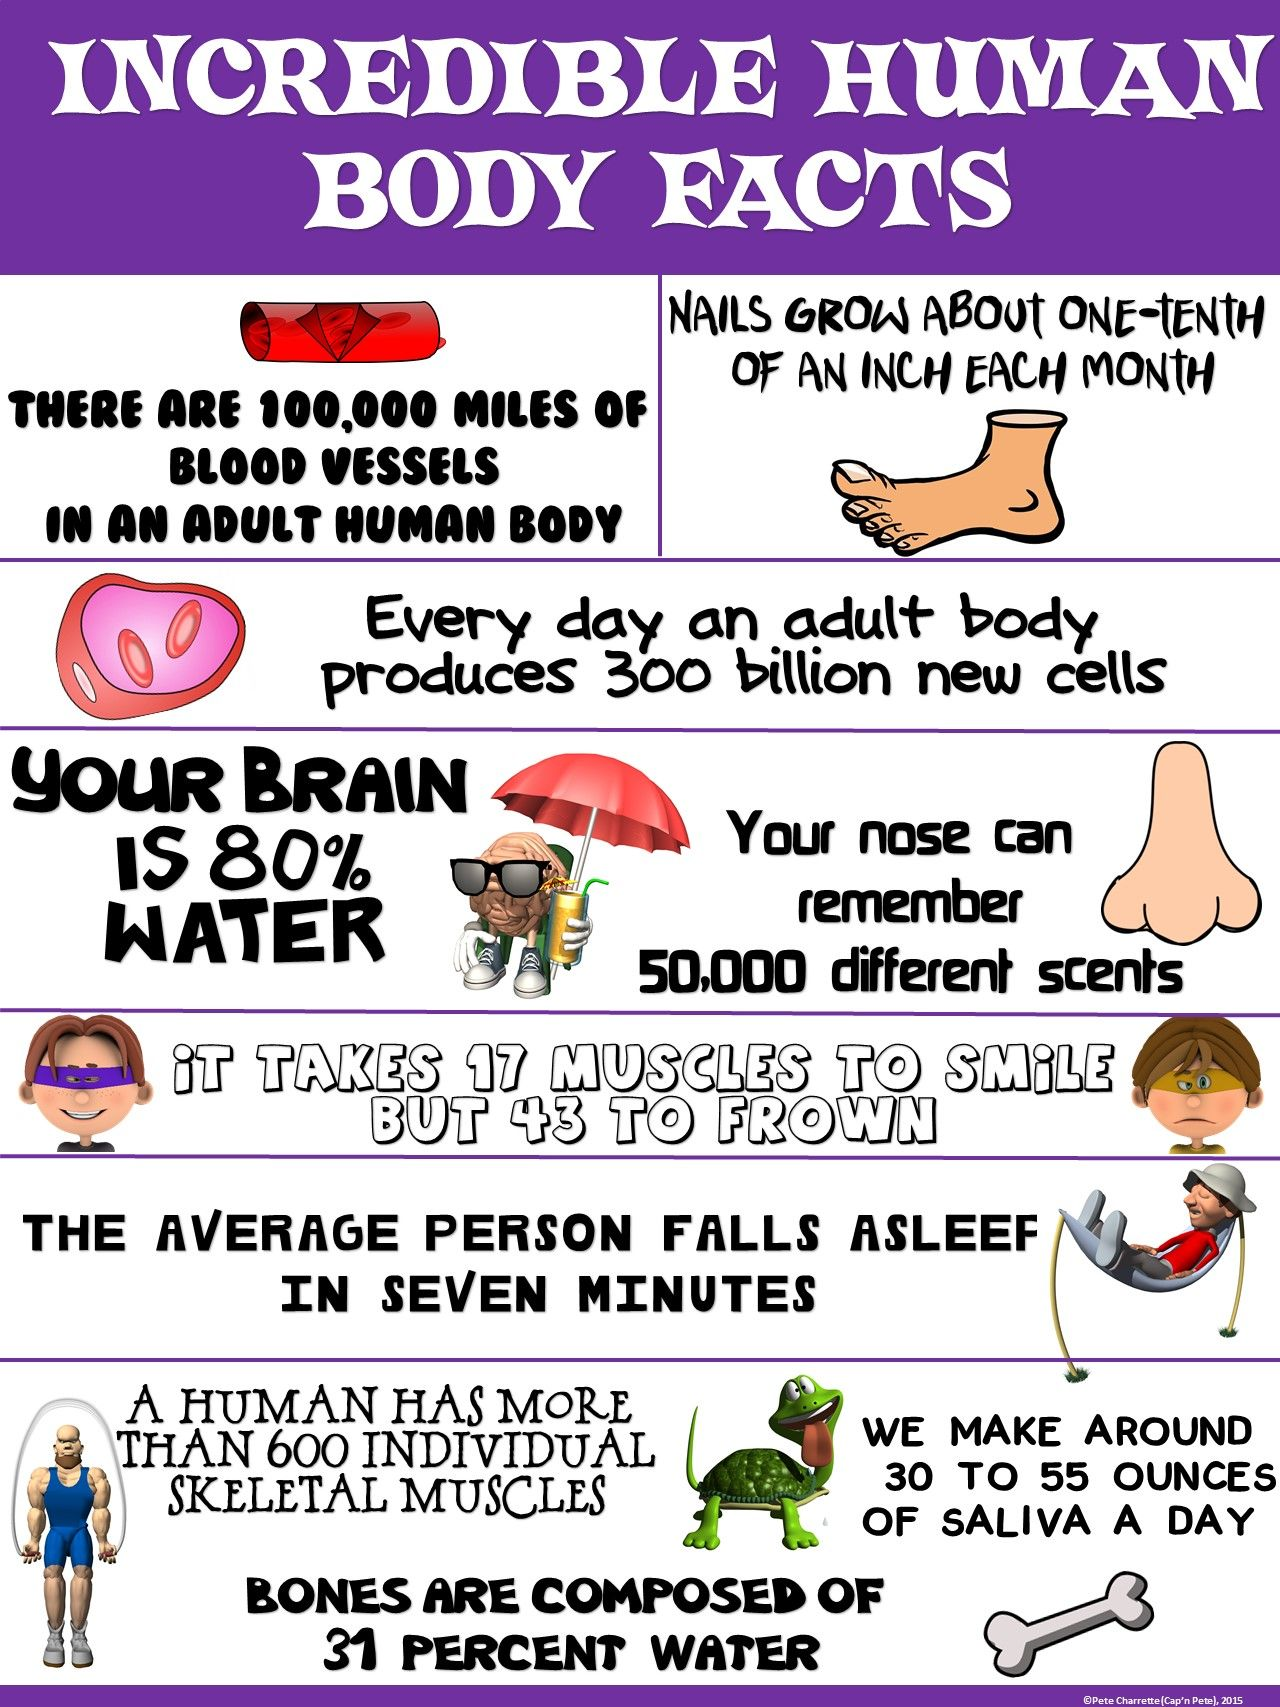 Health and Science Poster Incredible Human Body Facts is part of Human body facts - OUR BODIES ARE INCREDIBLE!!! This colorful  Incredible Human Body Facts  poster compiles a variety of interesting facts about the human body  The facts are meant to teach your students some cool realities about our bodies and are they presented in a  cool , contemporary poster format! The PDF file